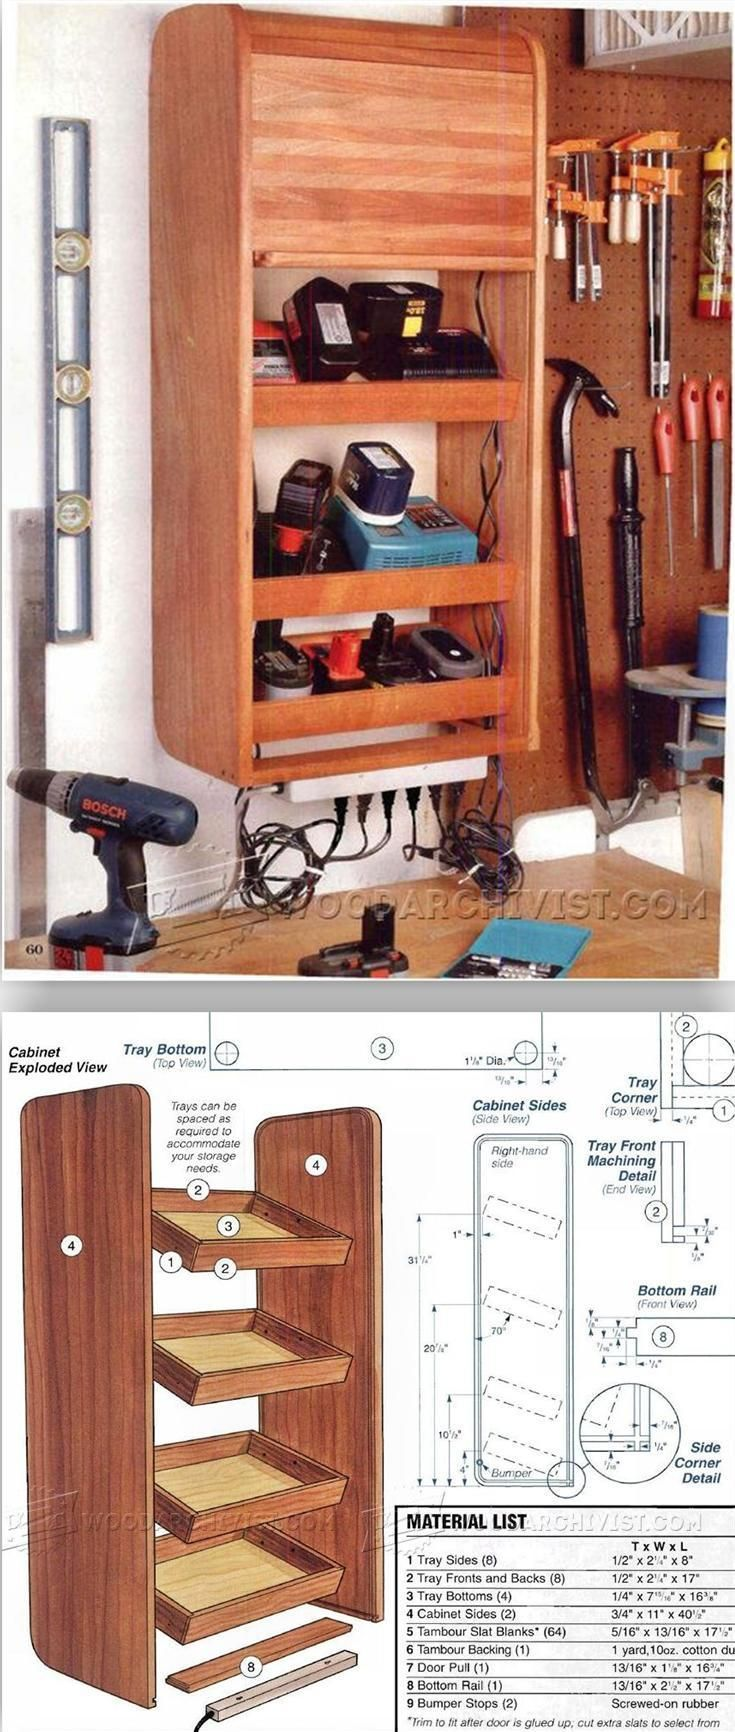 Cordless Tool Charging Cabinet Plans - Workshop Solutions Plans, Tips and Tricks | http://WoodArchivist.com